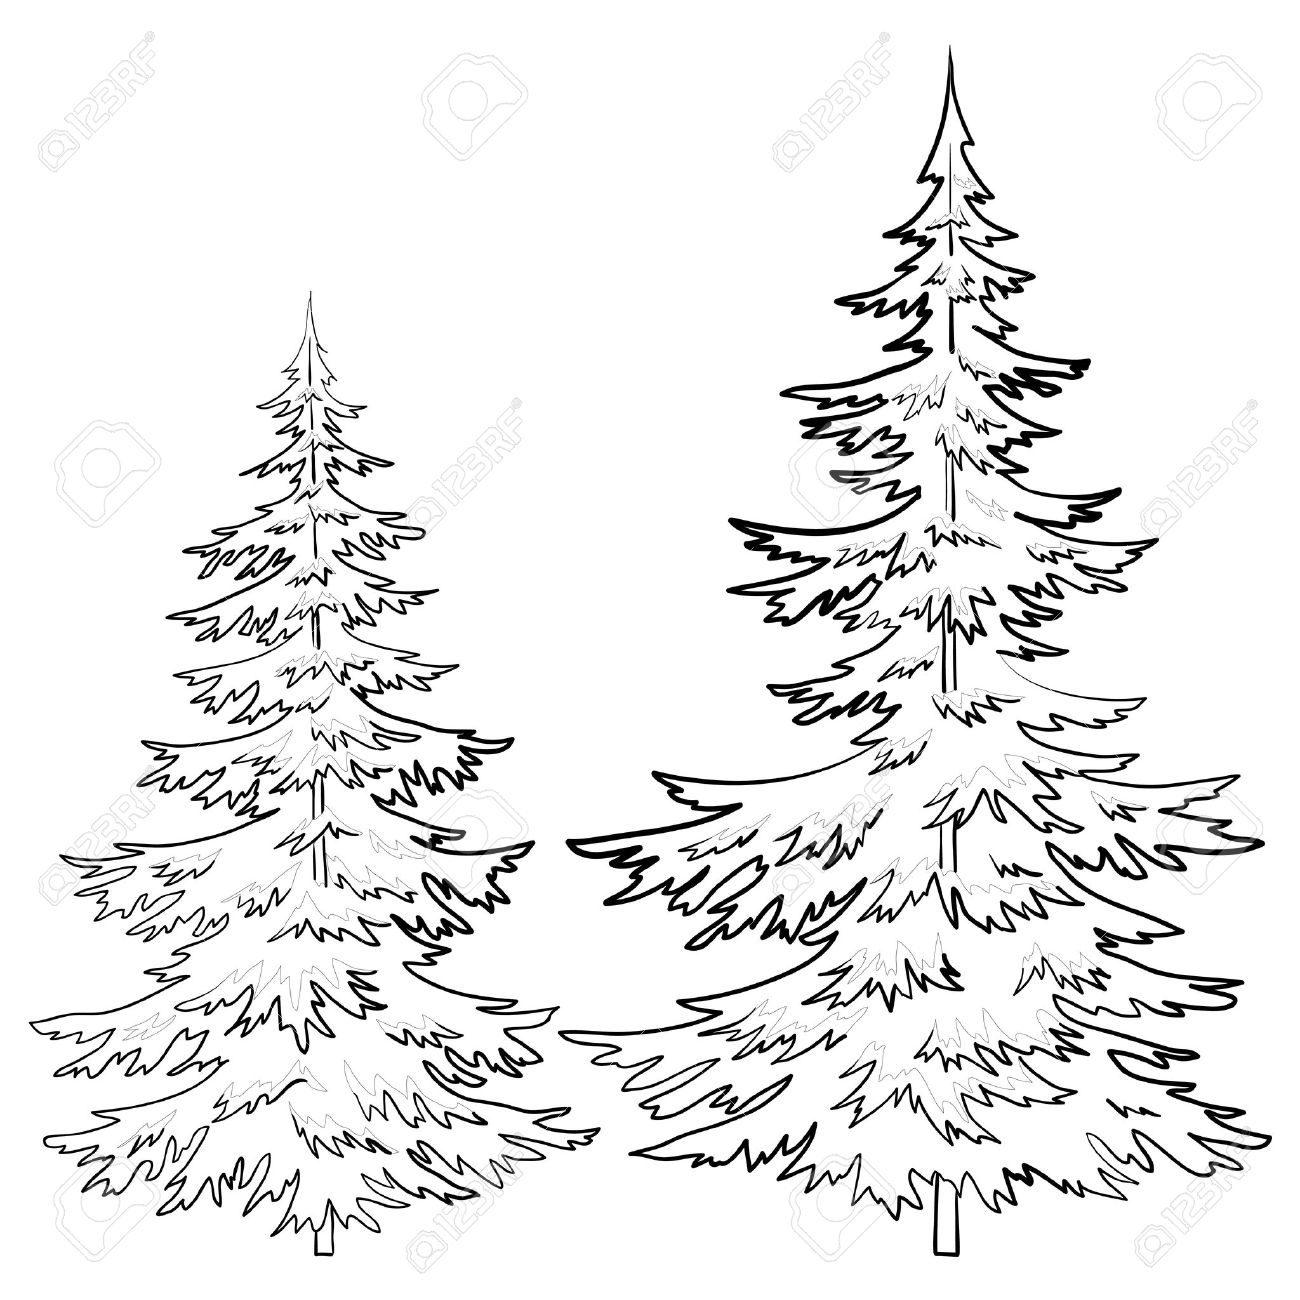 Tree Outline Drawing at GetDrawings | Free download